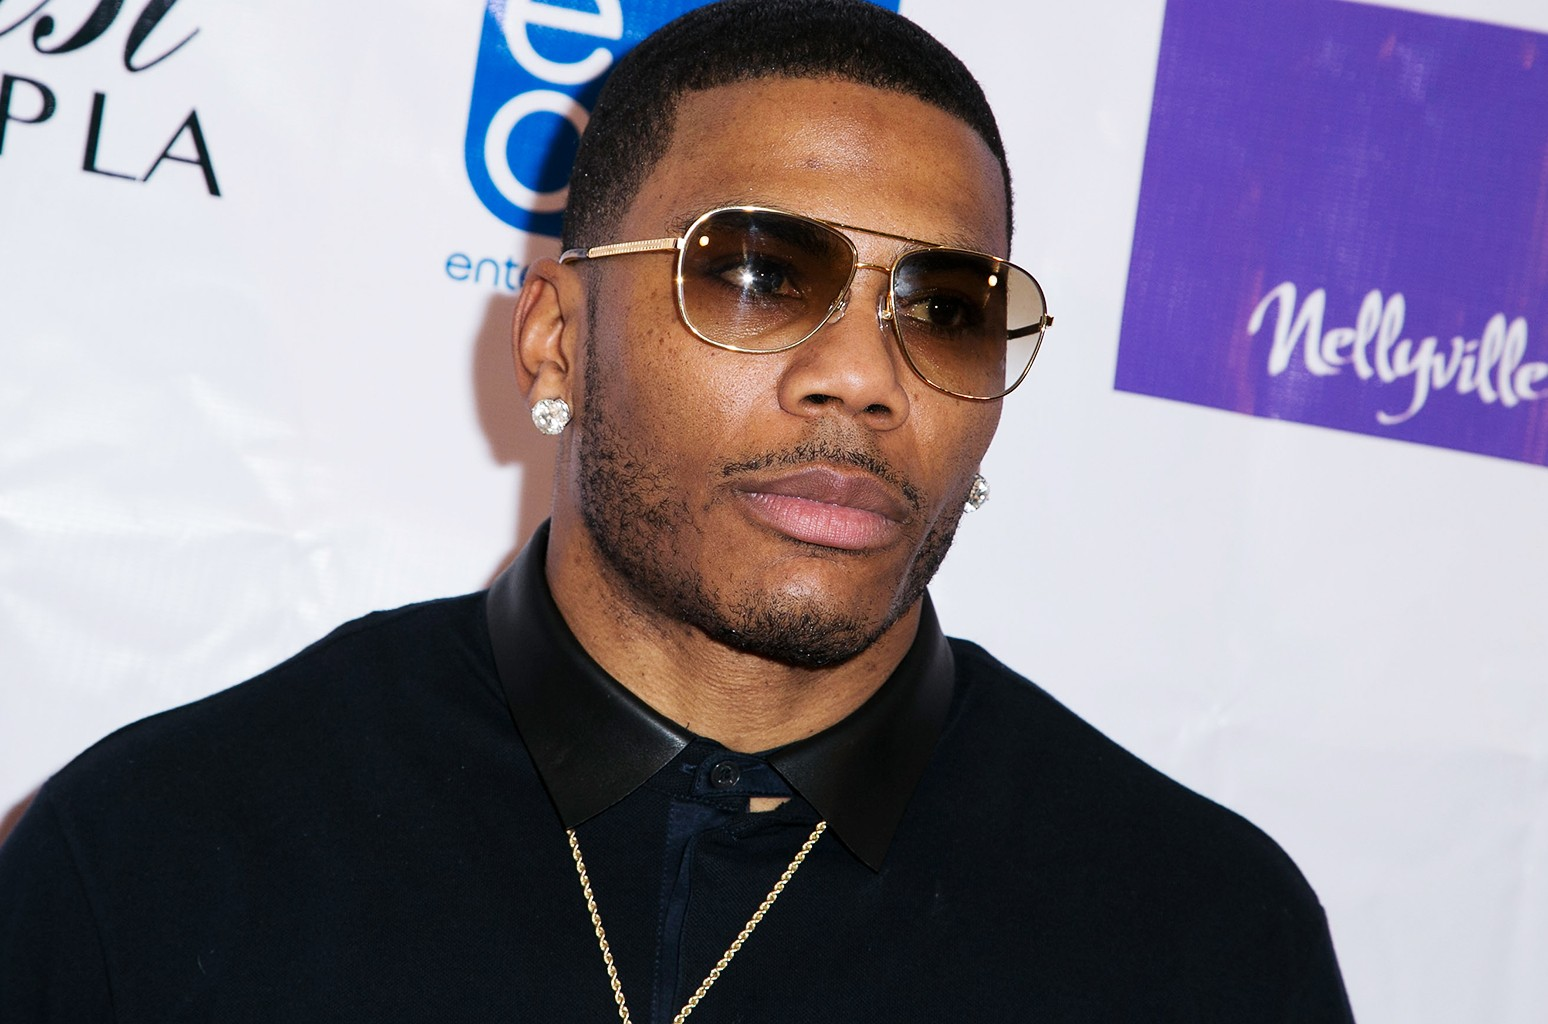 Nelly now is who with Who are